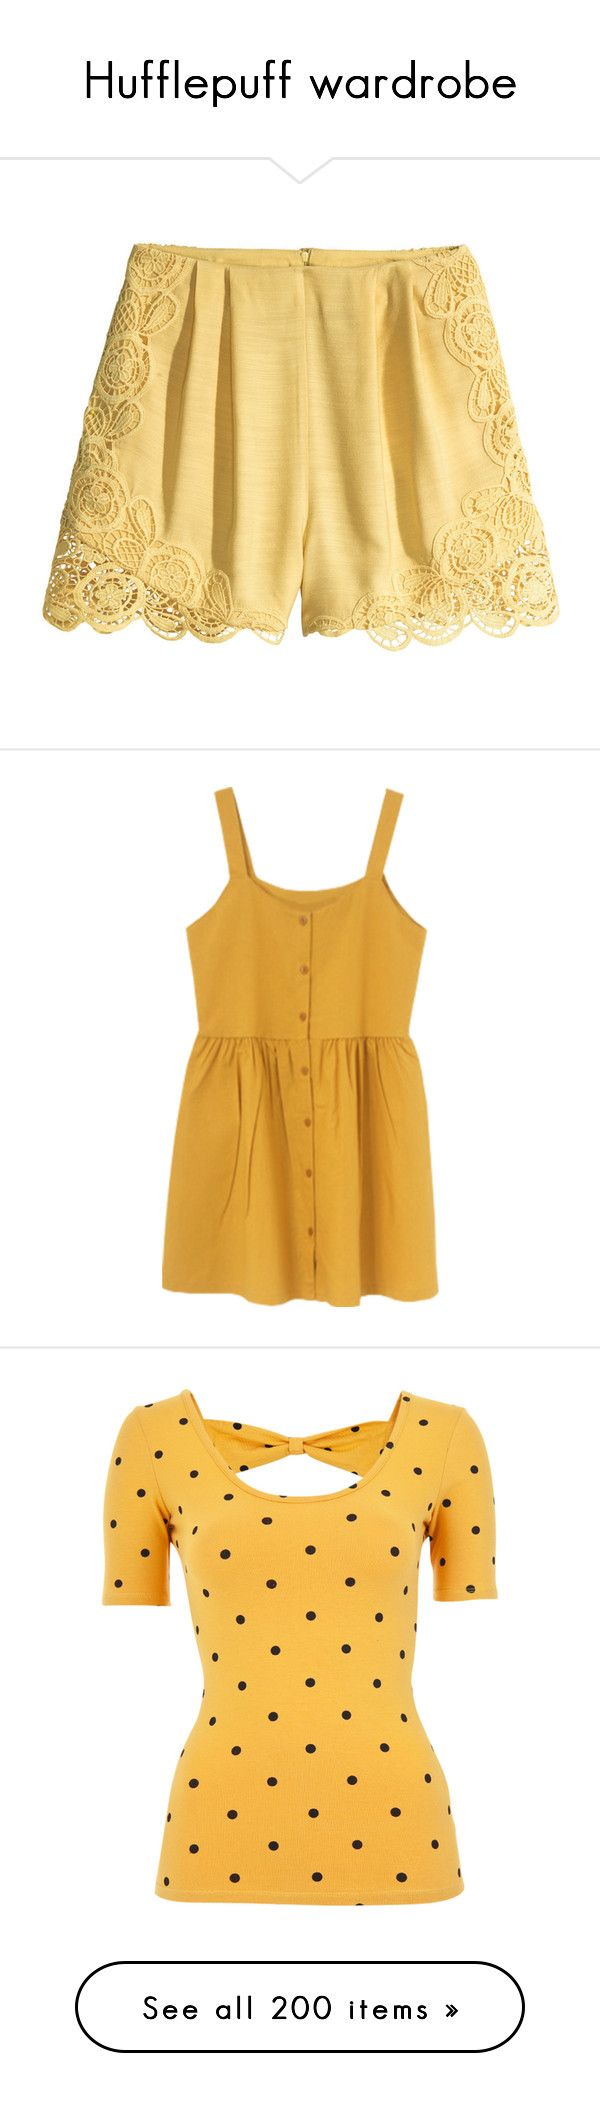 """""""Hufflepuff wardrobe"""" by weeby ❤ liked on Polyvore featuring shorts, light yellow, hot pants, high waisted lace shorts, pleated shorts, highwaist shorts, h&m, dresses, button front dress and yellow dress"""